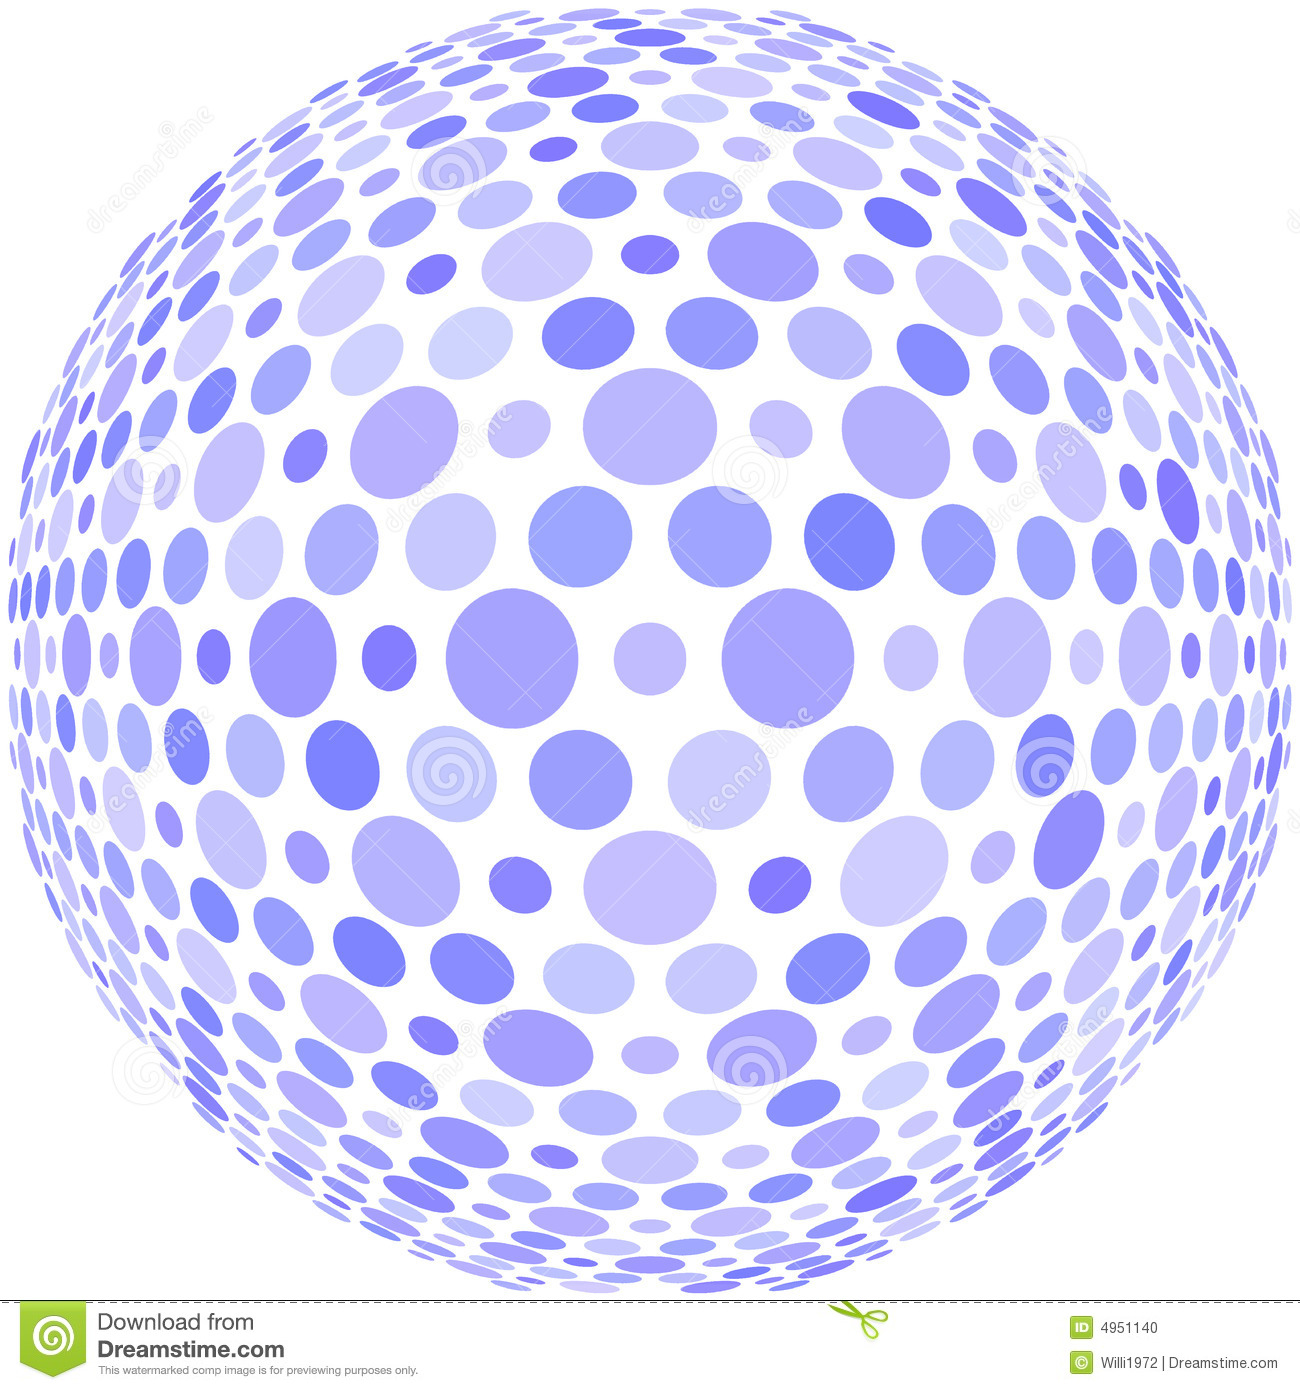 Blue dots on a sphere